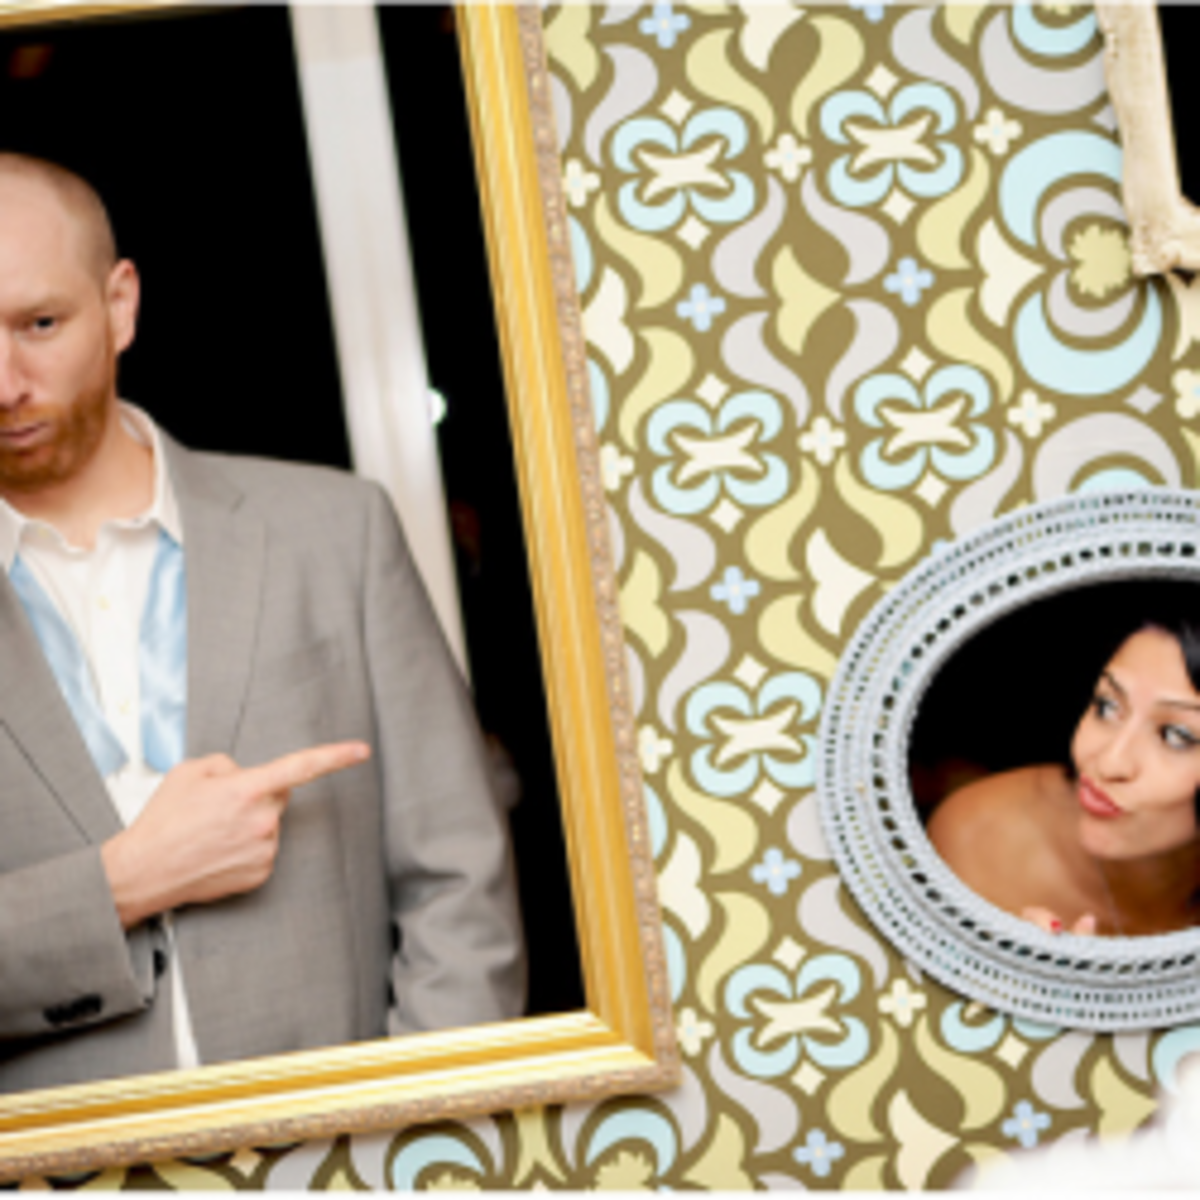 ★ DIY Backdrops & Photo Booths | Fun Background Ideas for Photographs ★